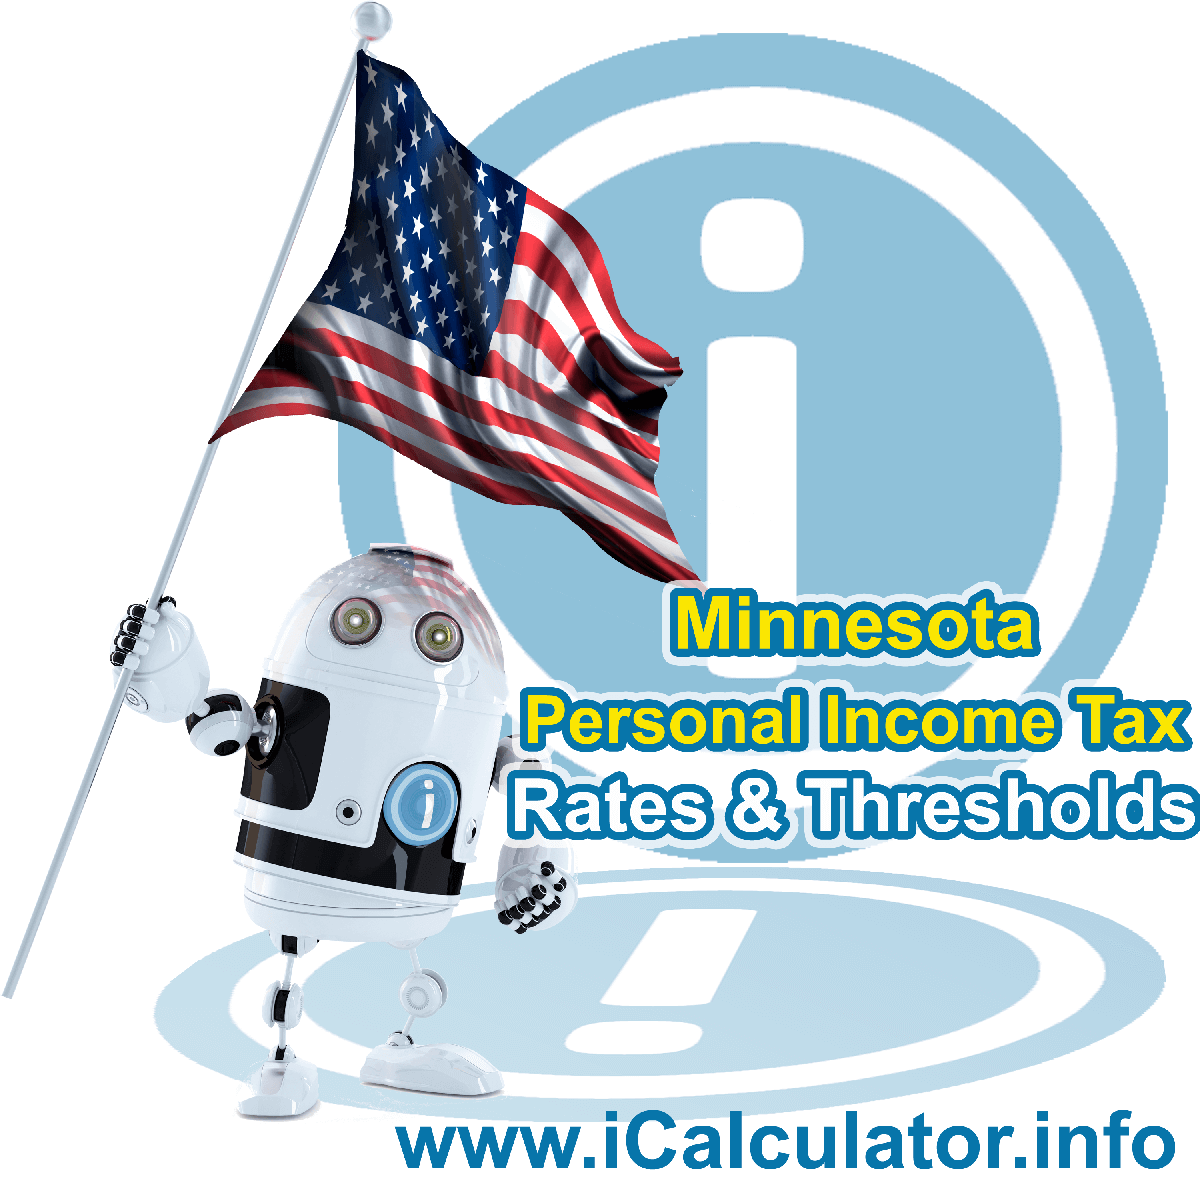 Minnesota State Tax Tables 2015. This image displays details of the Minnesota State Tax Tables for the 2015 tax return year which is provided in support of the 2015 US Tax Calculator